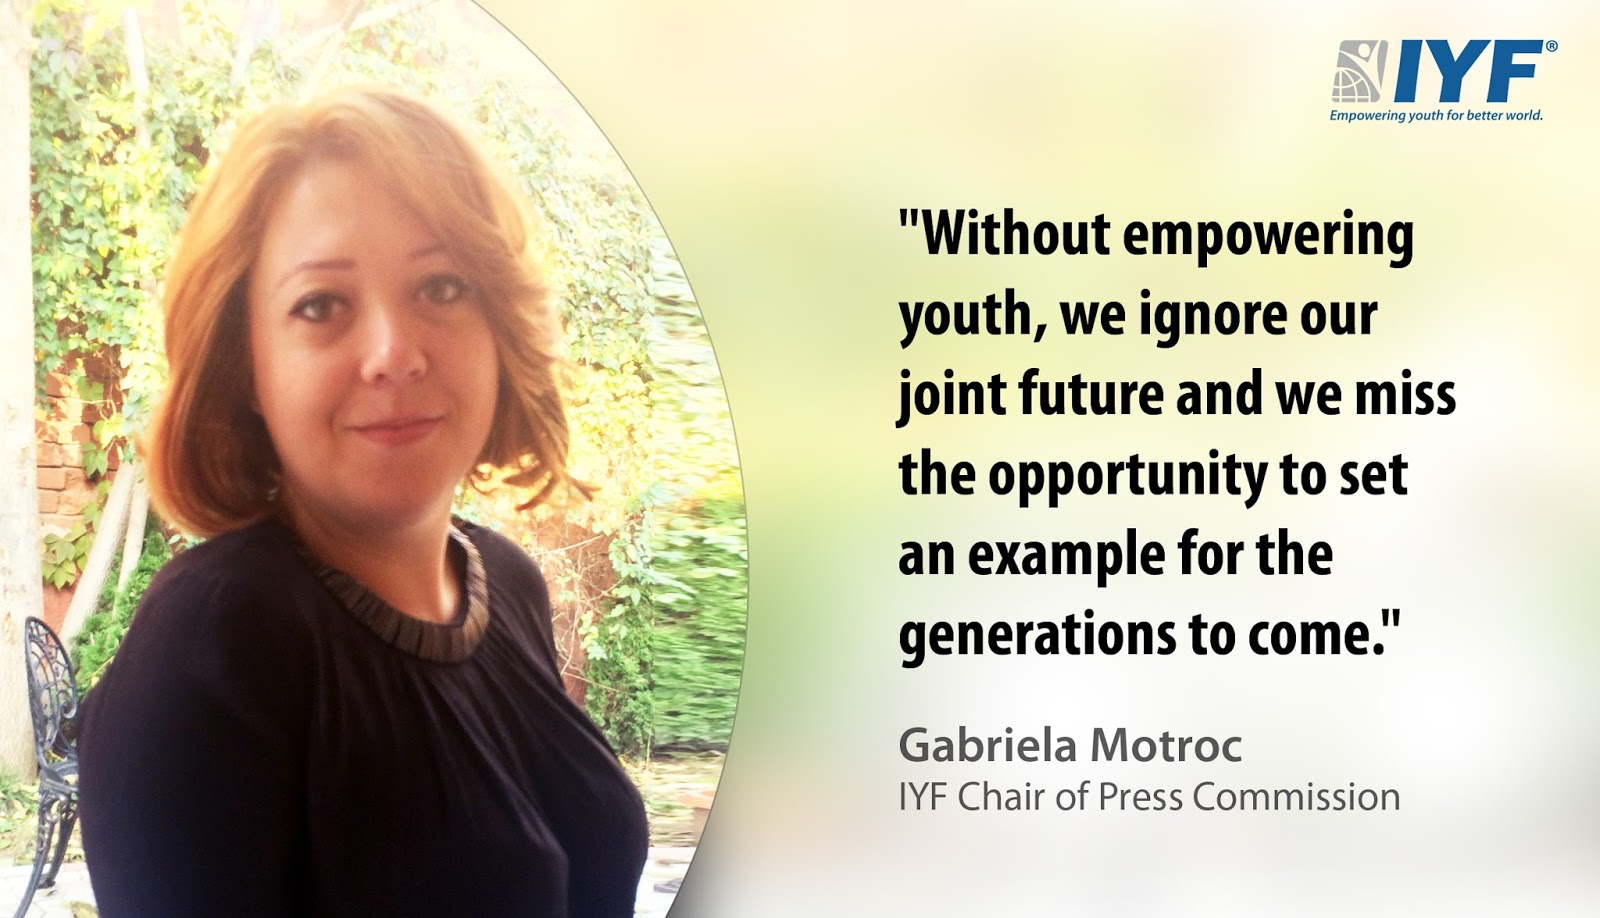 Gabriela Motroc, IYF Chair of Press Commission